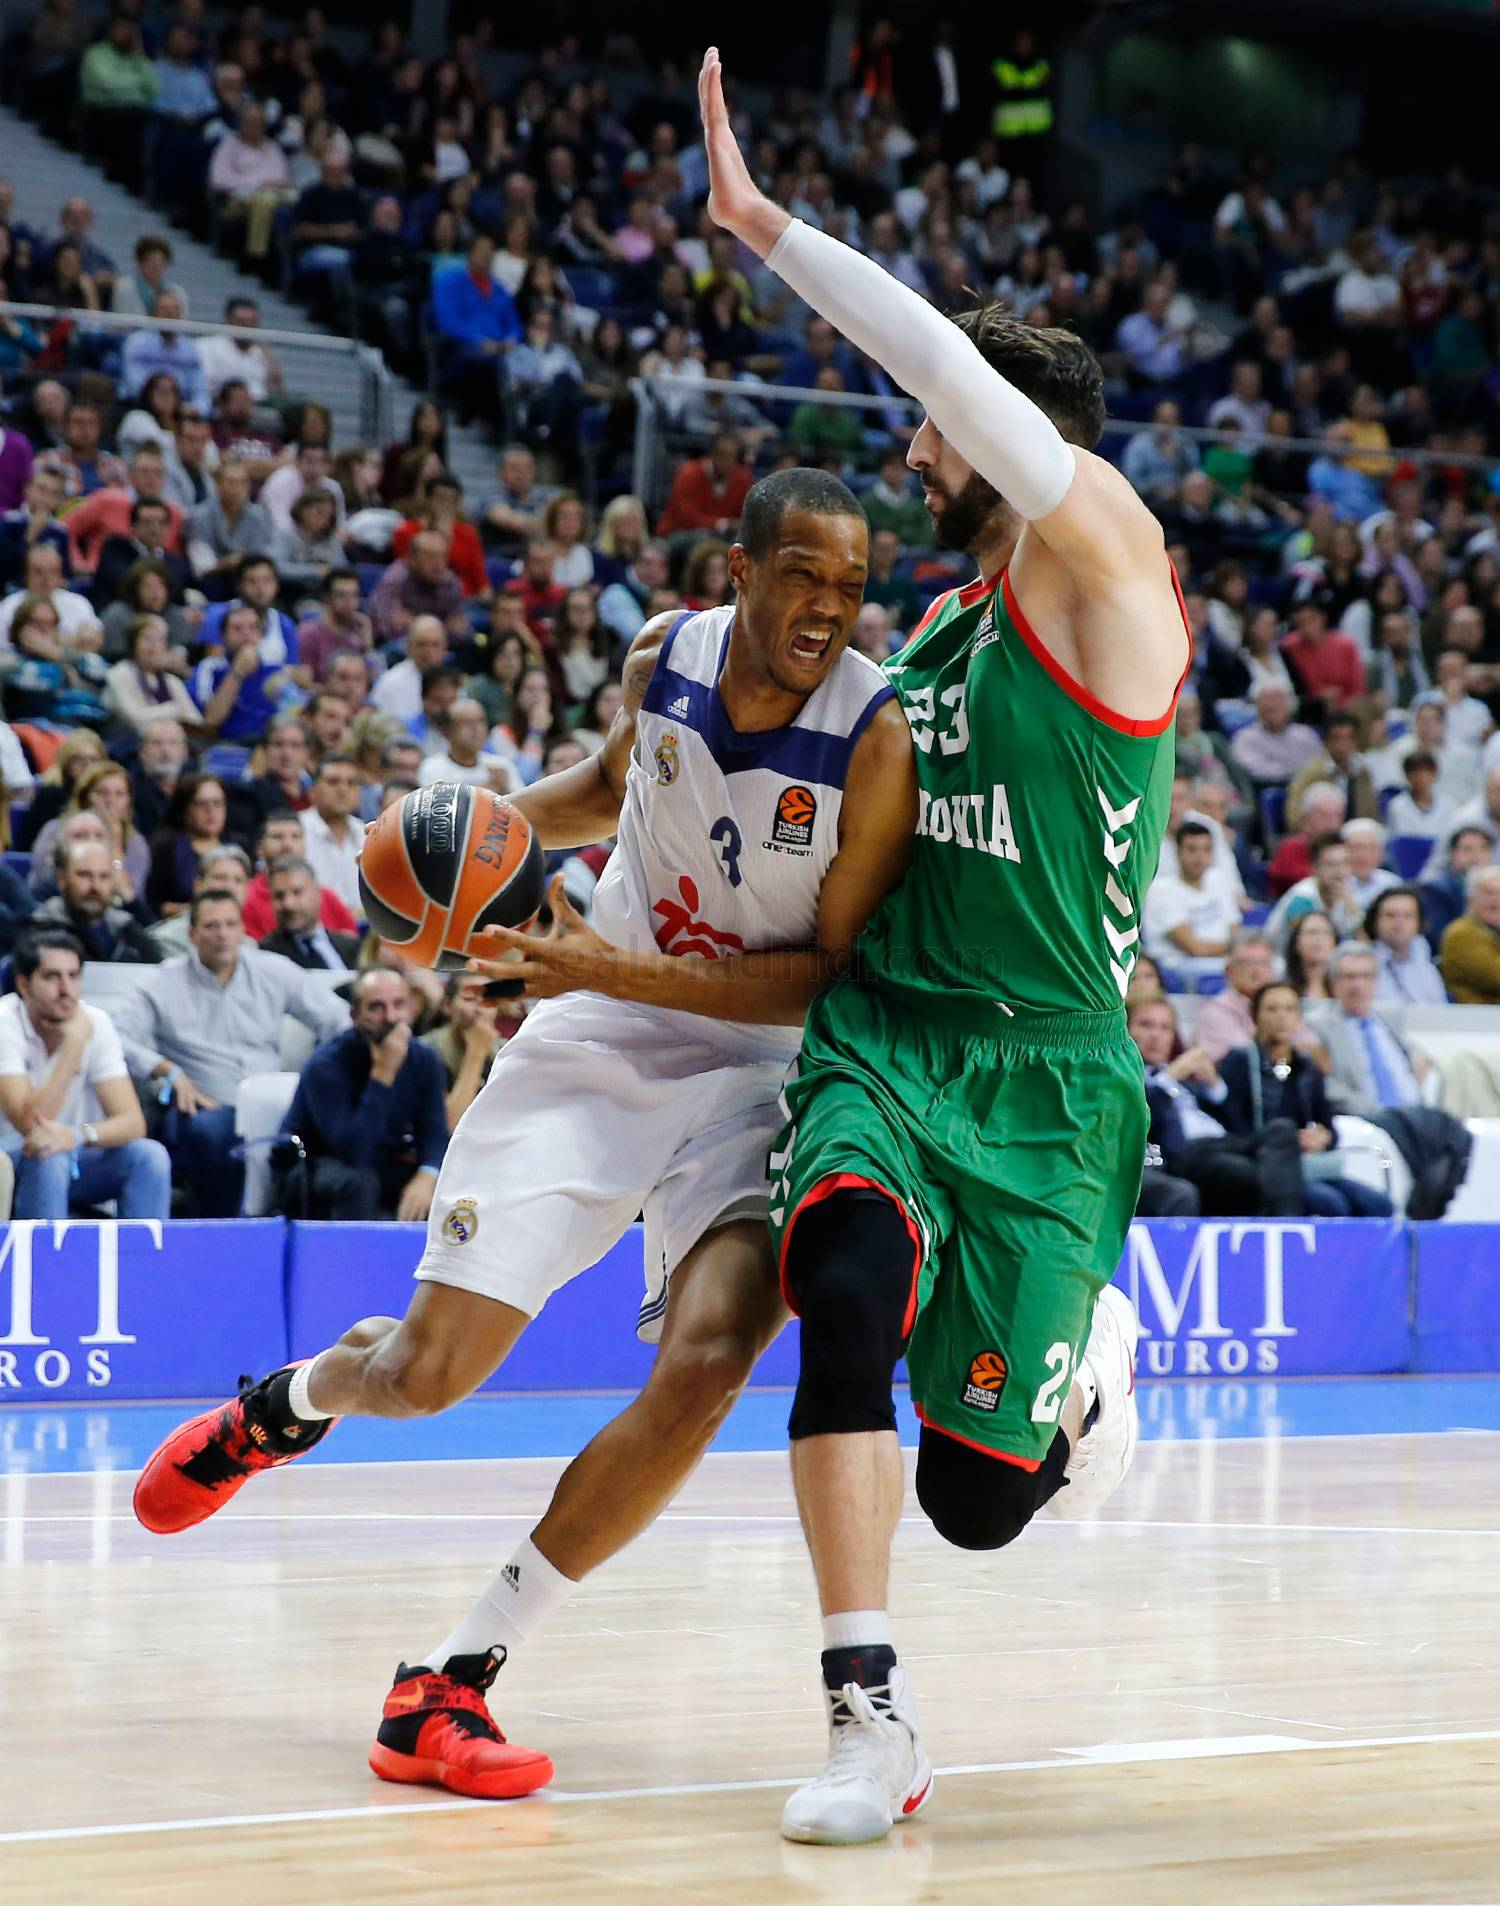 Real Madrid - Real Madrid - Baskonia - 25-10-2016